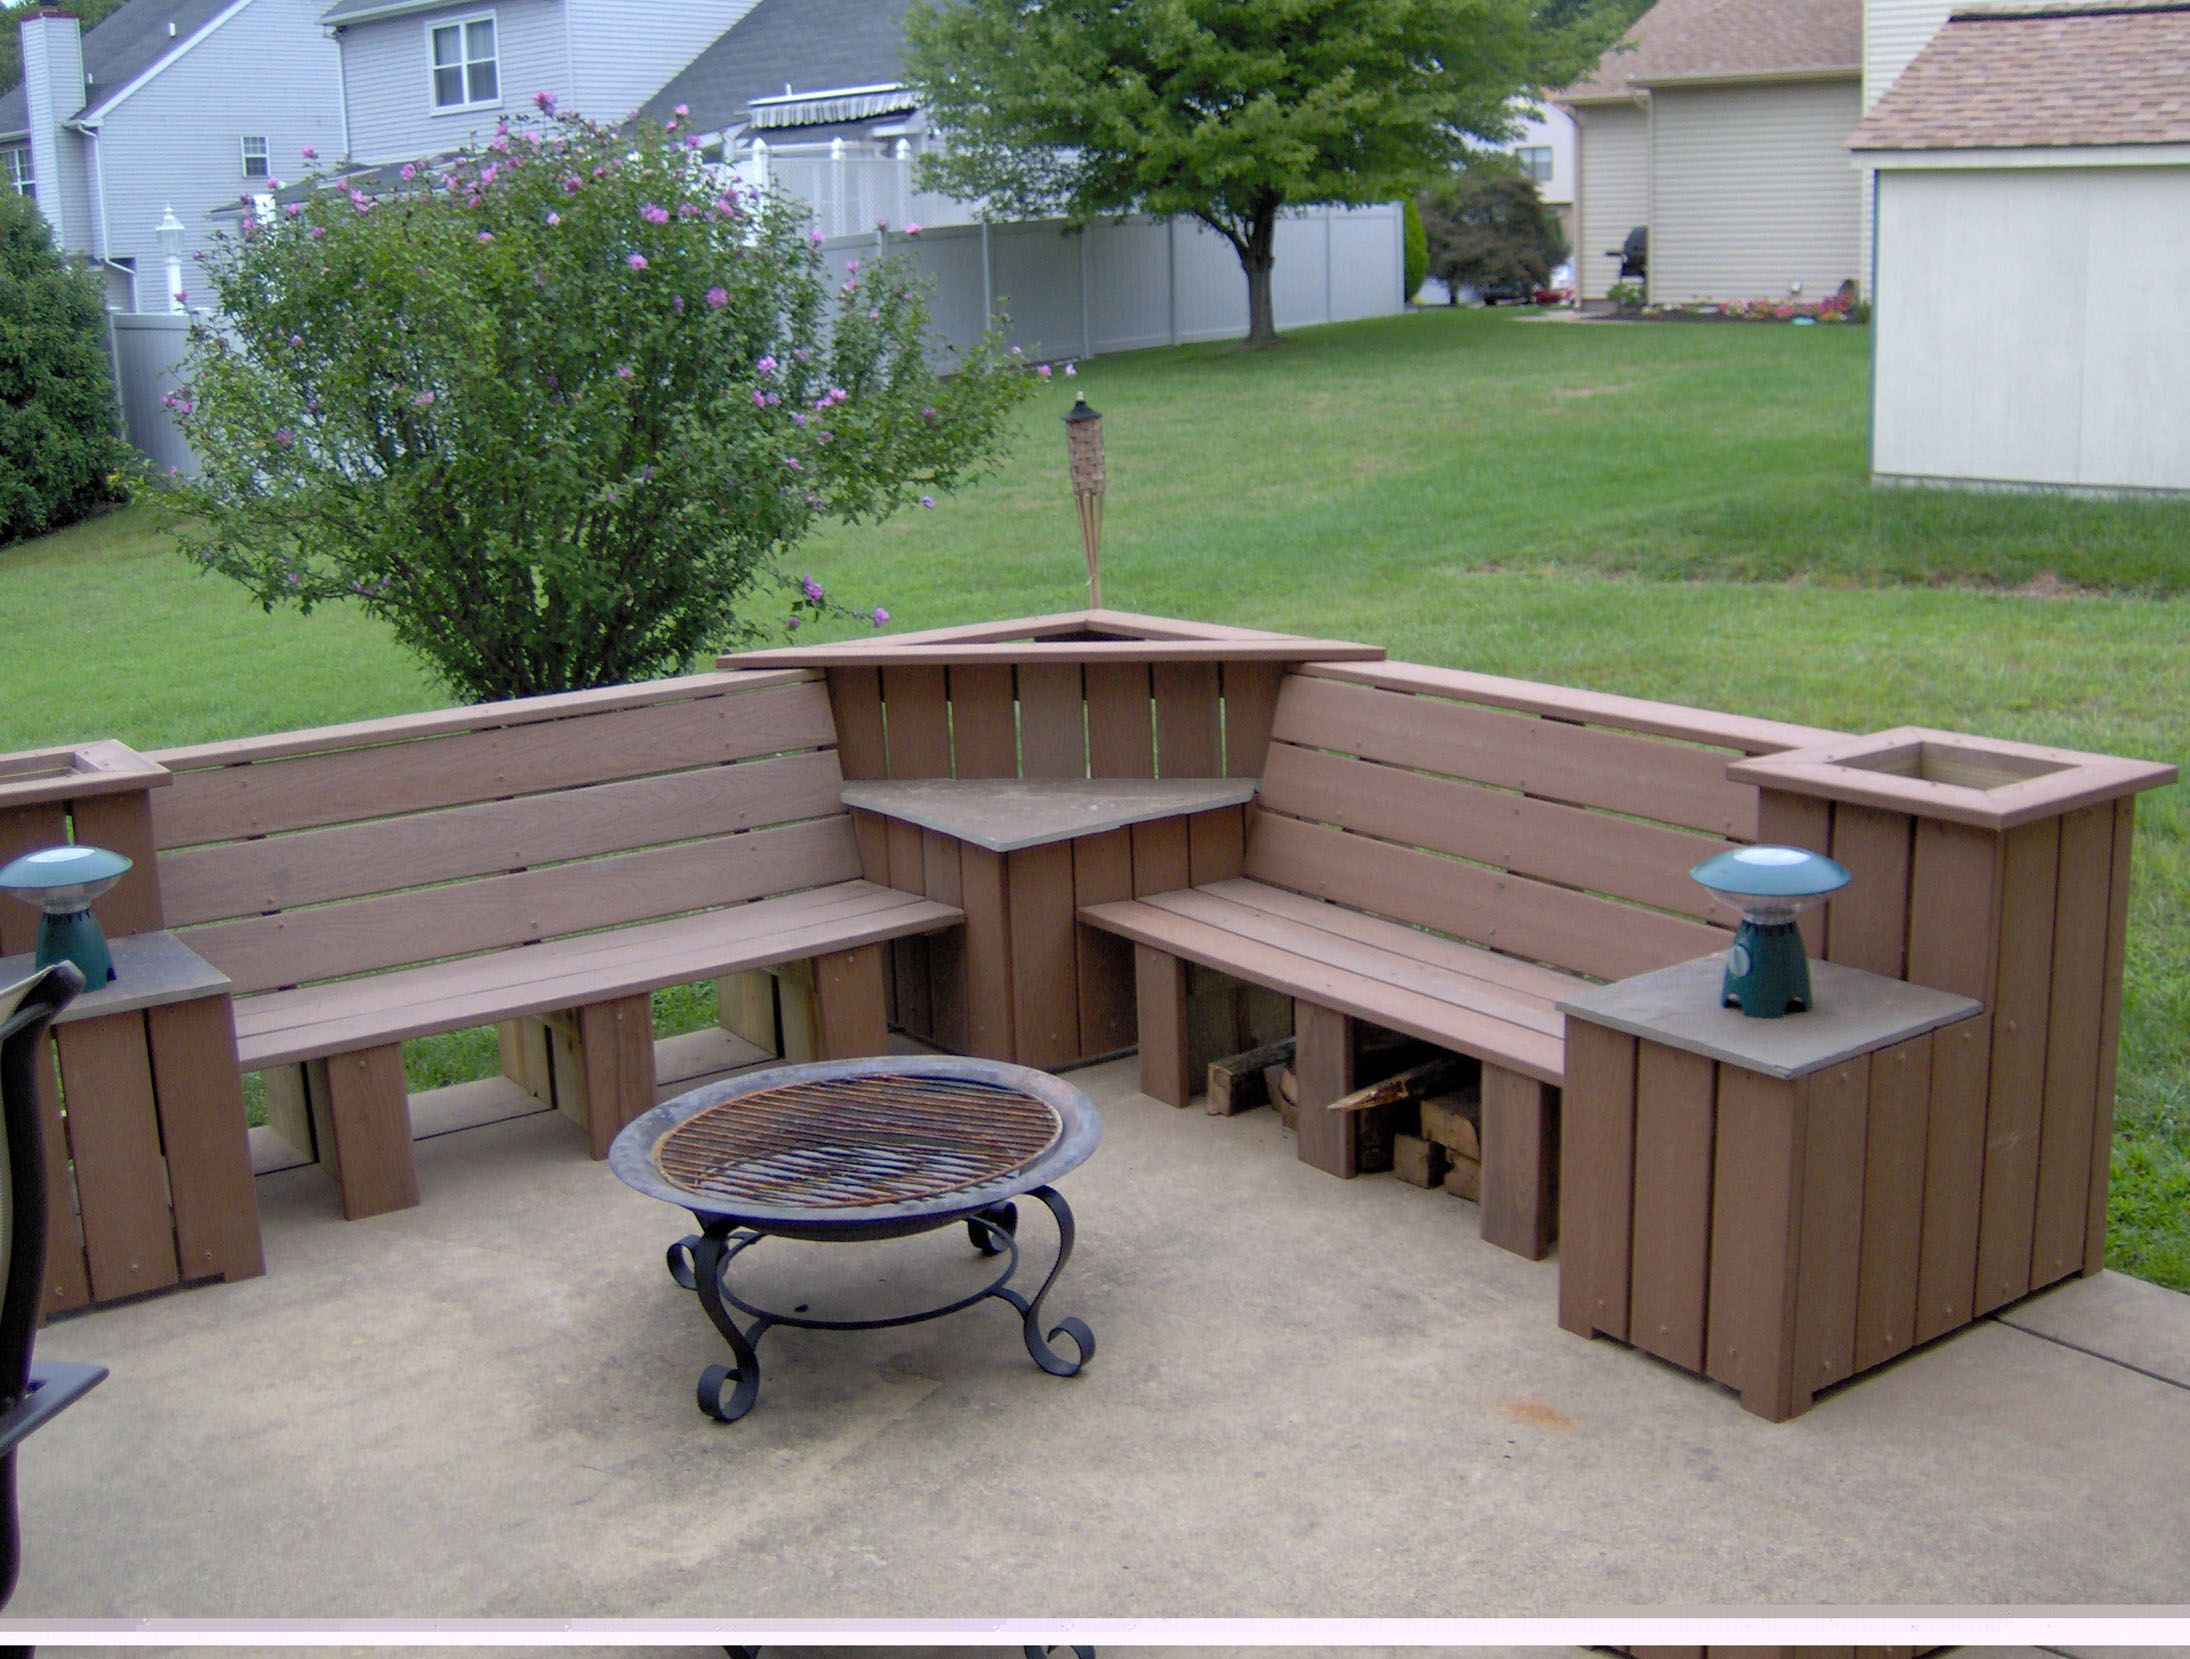 Outdoor furniture plans - Tips For Making Your Own Outdoor Furniture